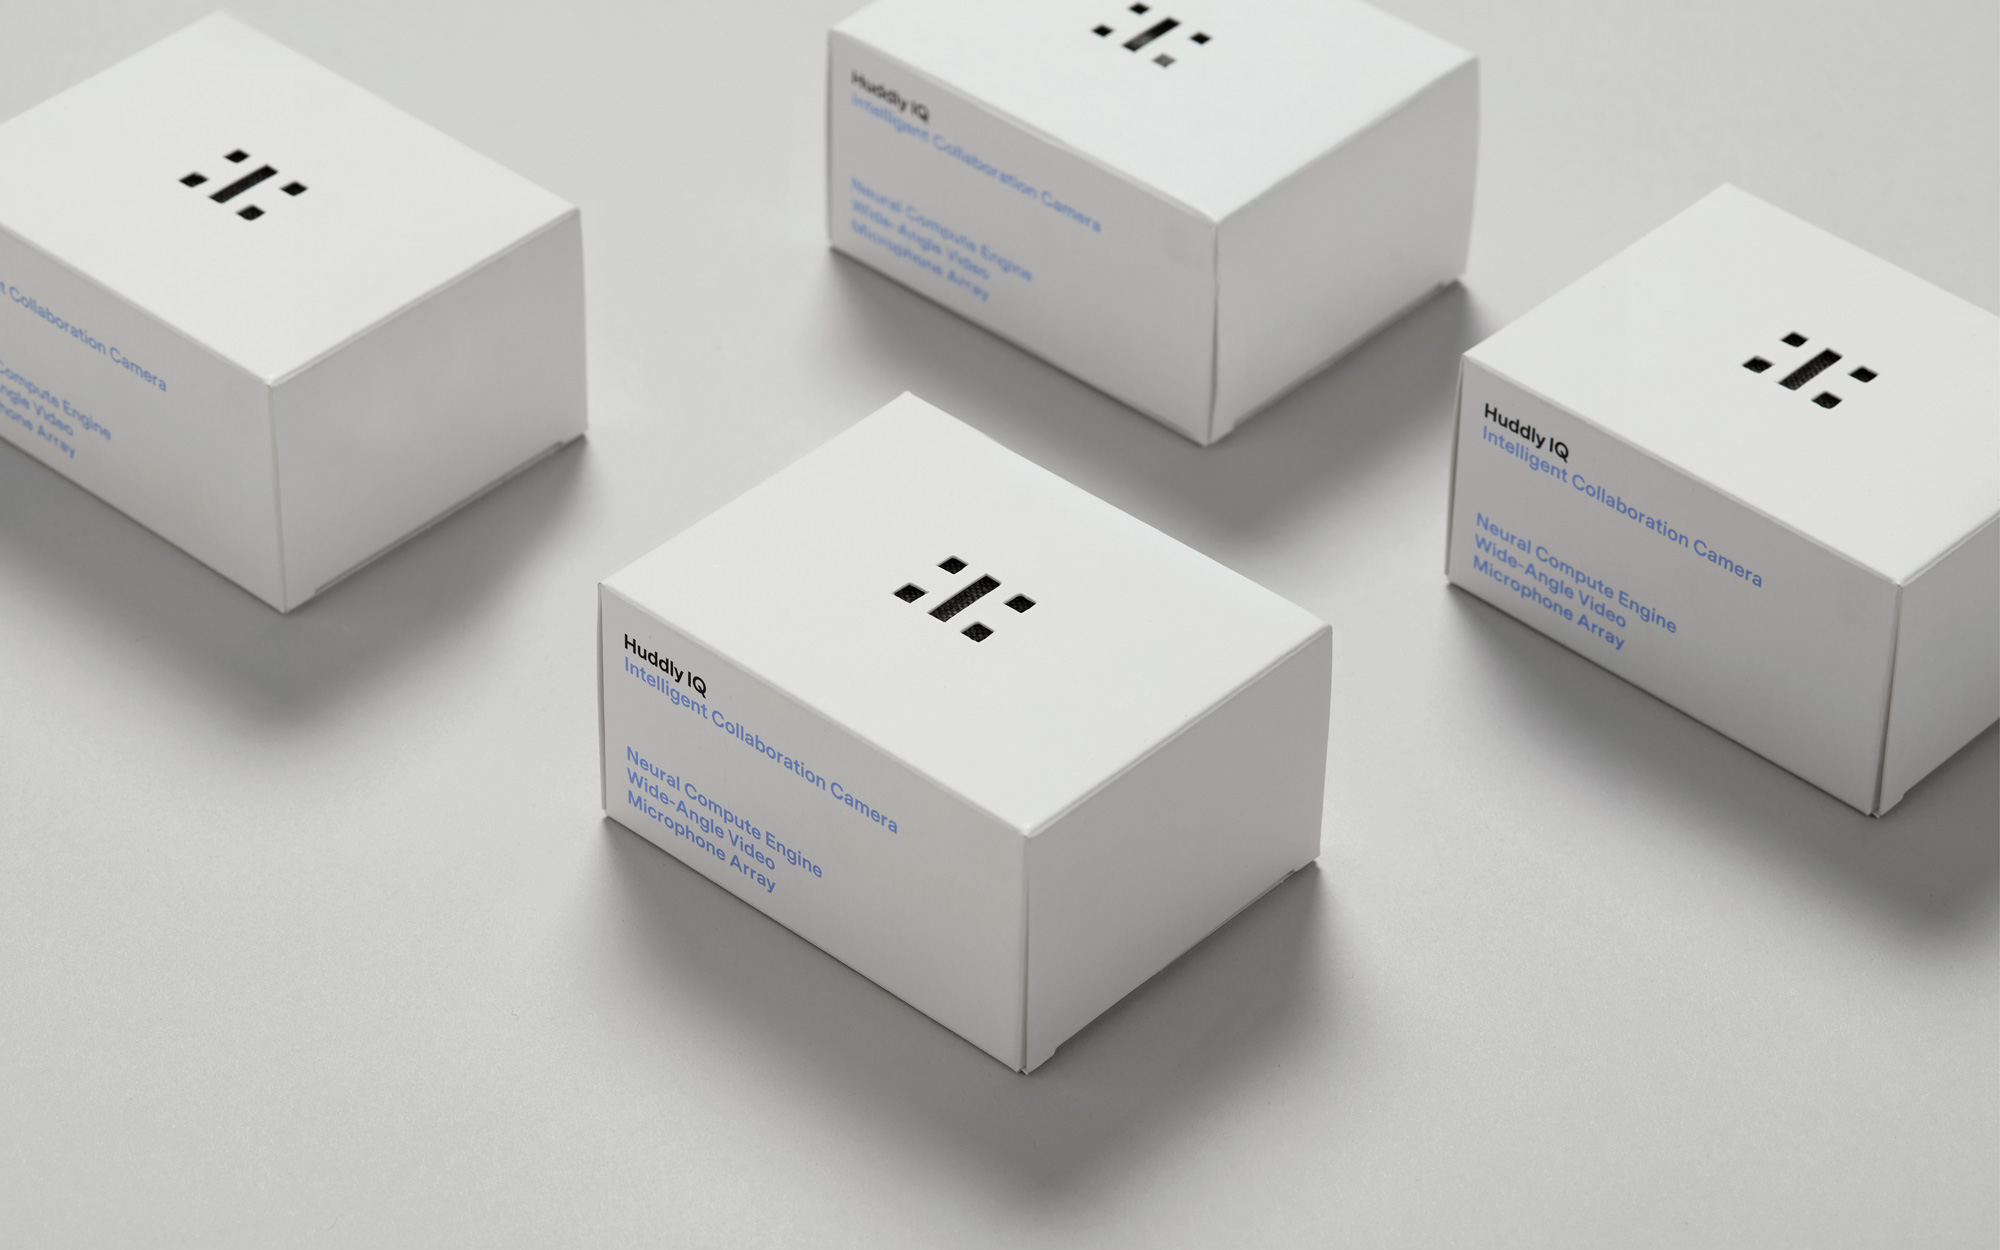 Follow-up: New Logo and Identity for Huddly by Heydays